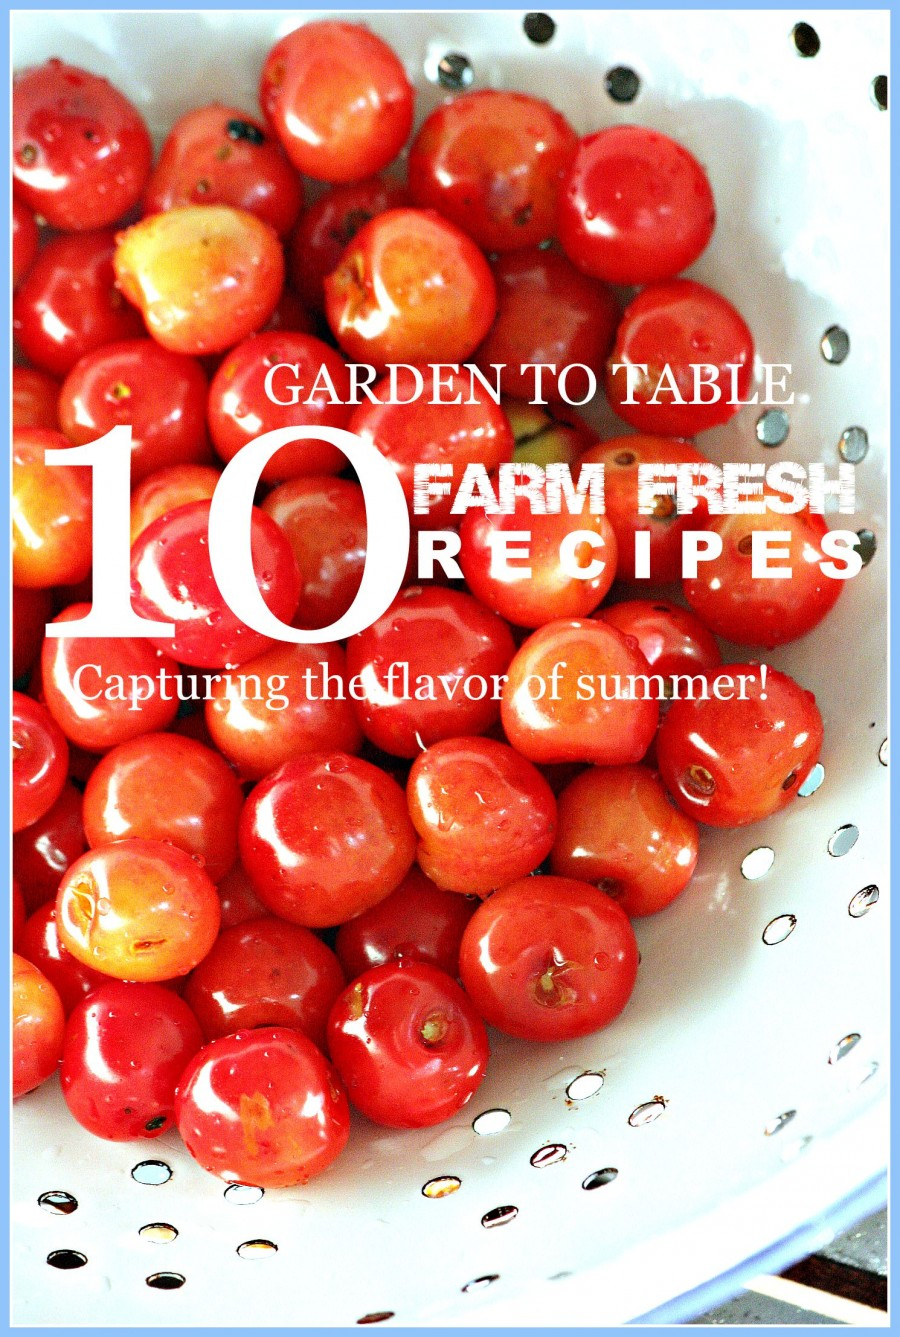 GARDEN TO TABLE AT STONEGABLE… 10 FARM FRESH SUMMER RECIPES!